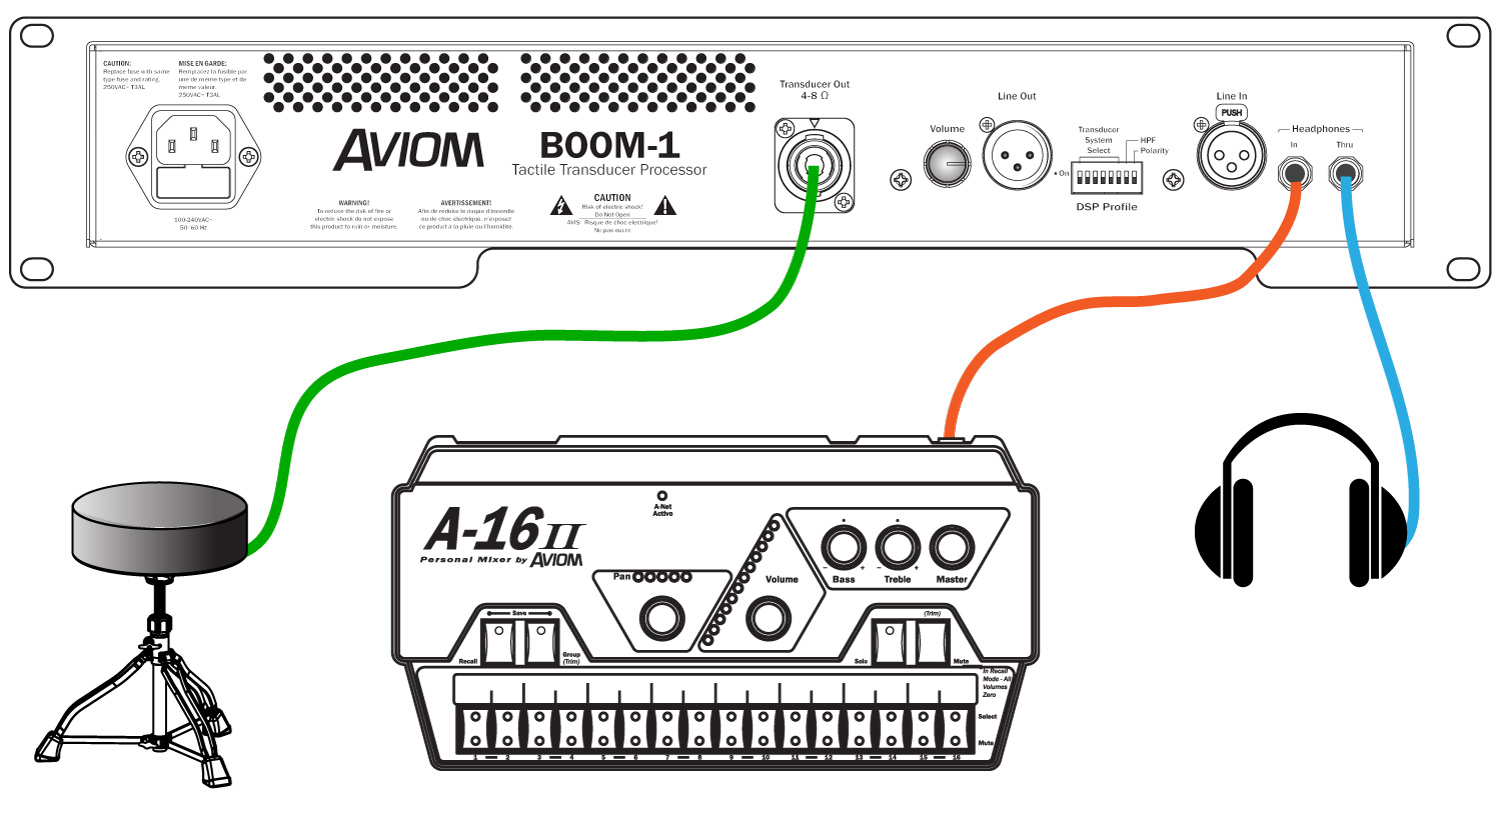 Aviom Products